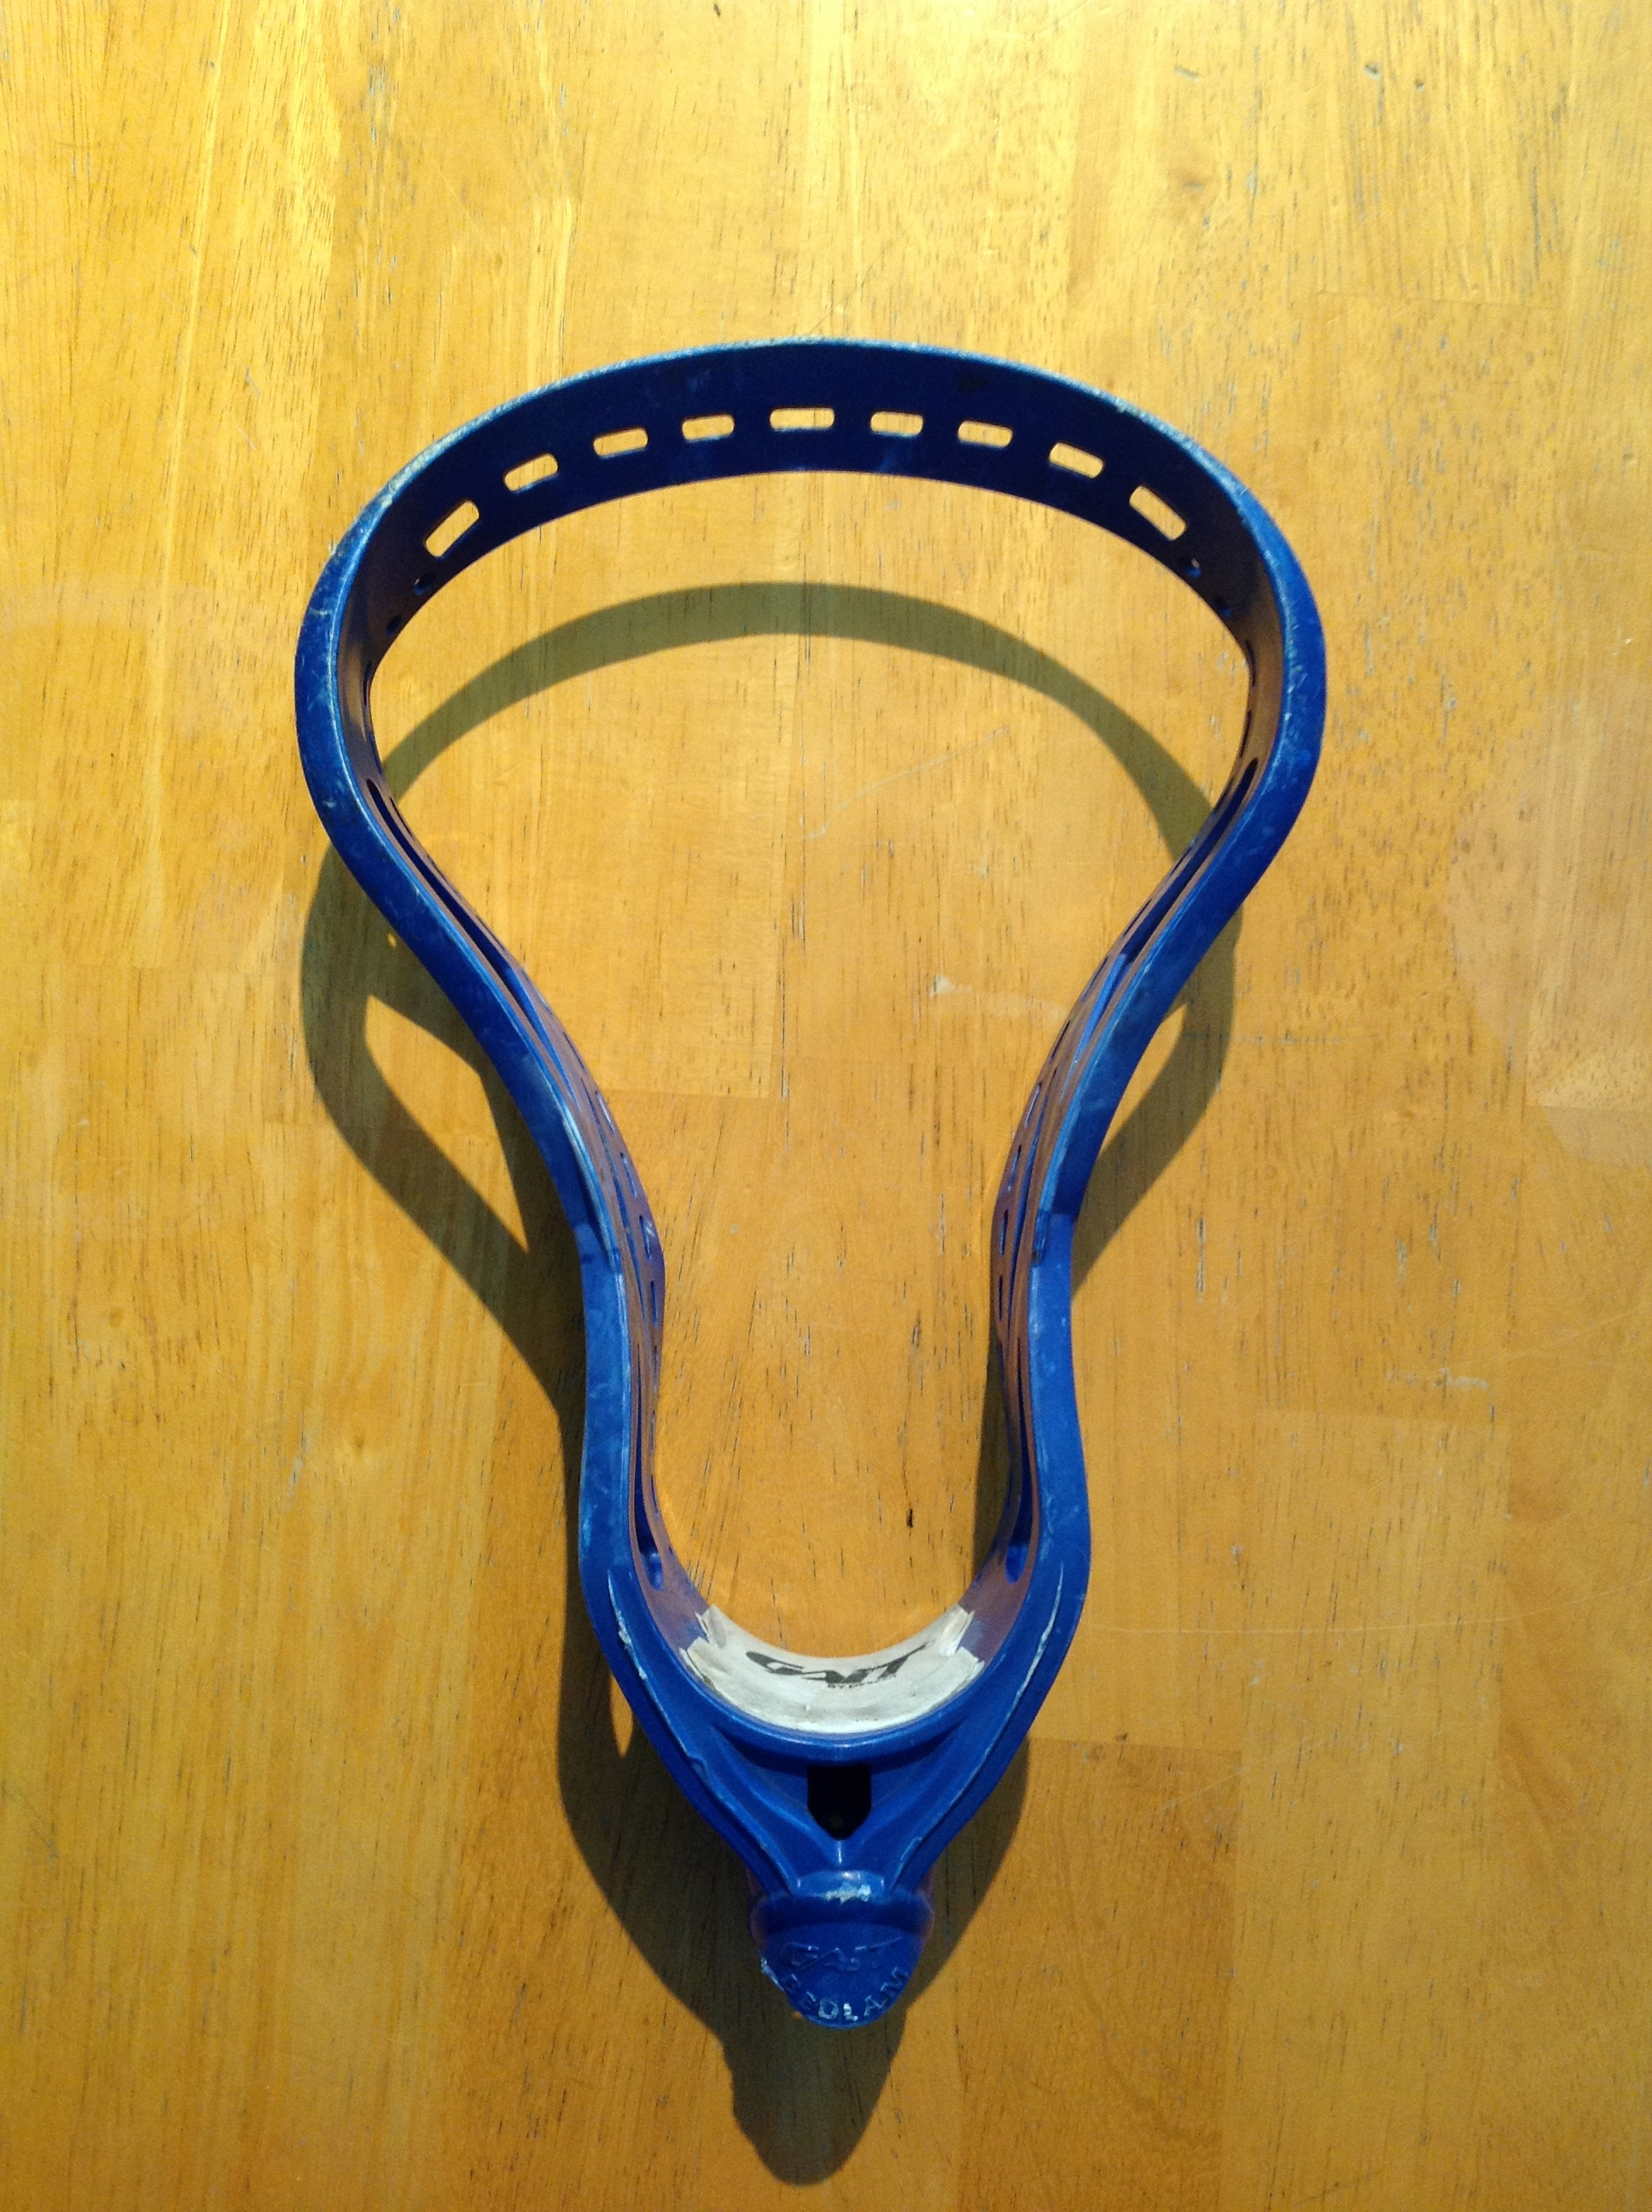 How to pinch a Lacrosse Head